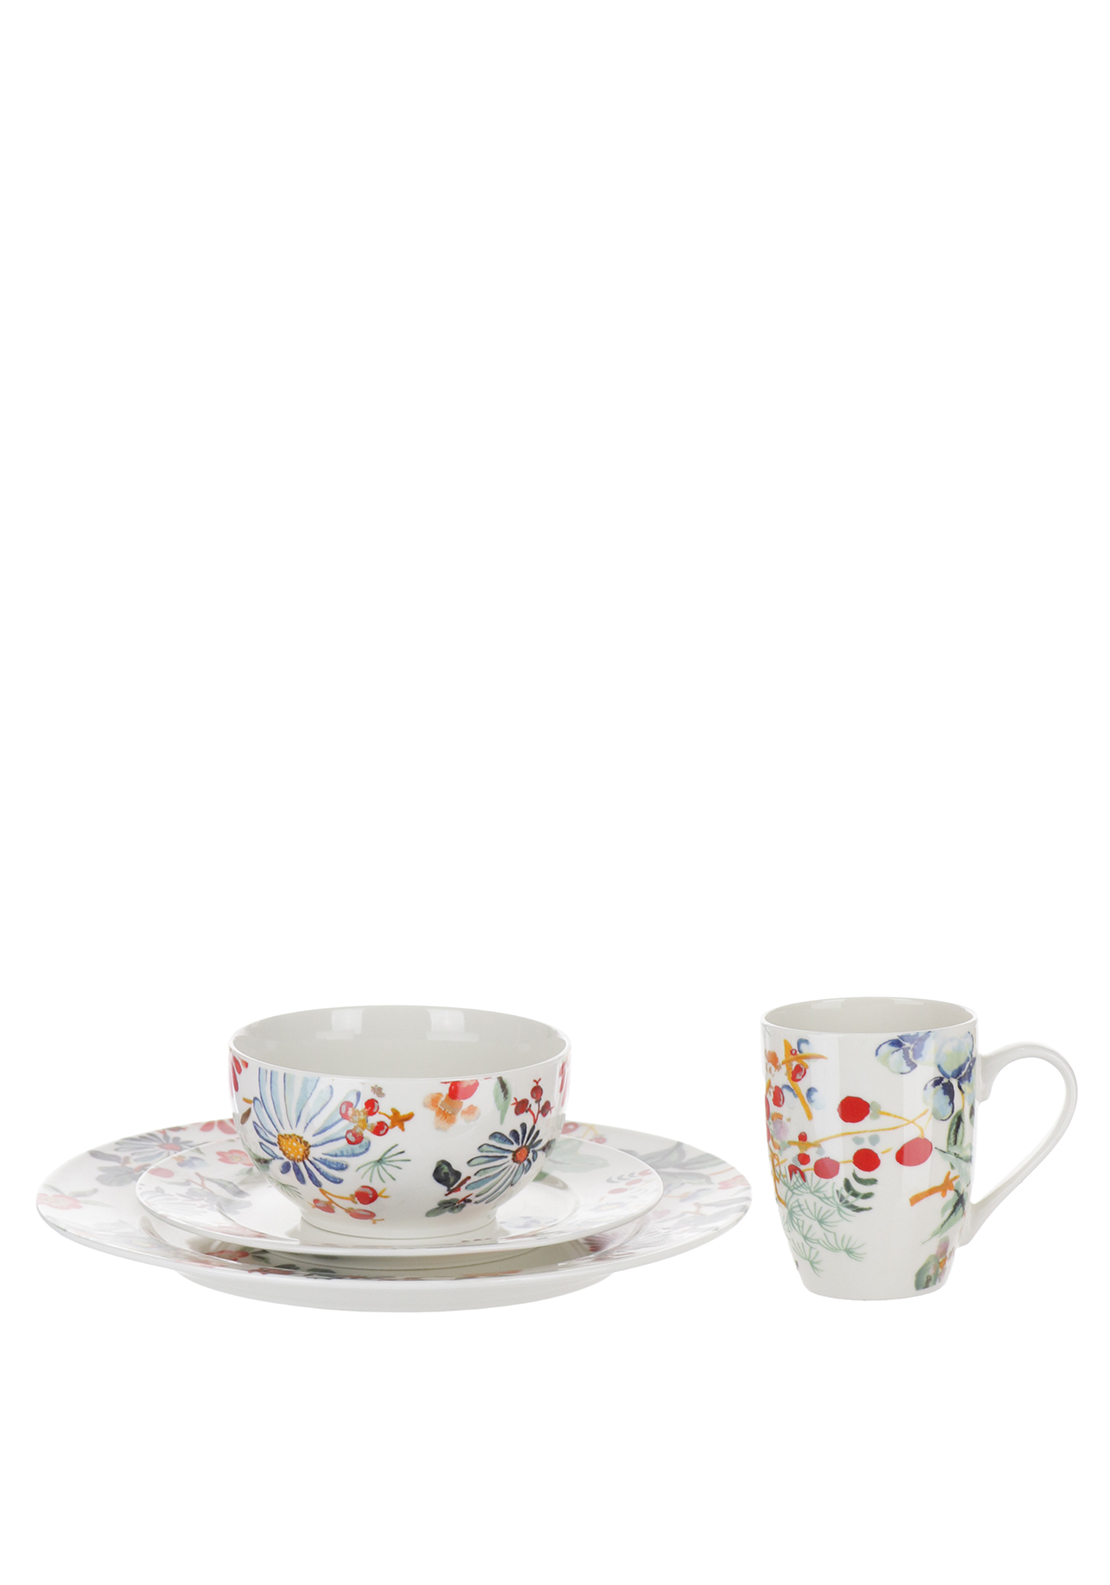 Shannonbridge Looks Like Daisy Dinner Set 16 Piece